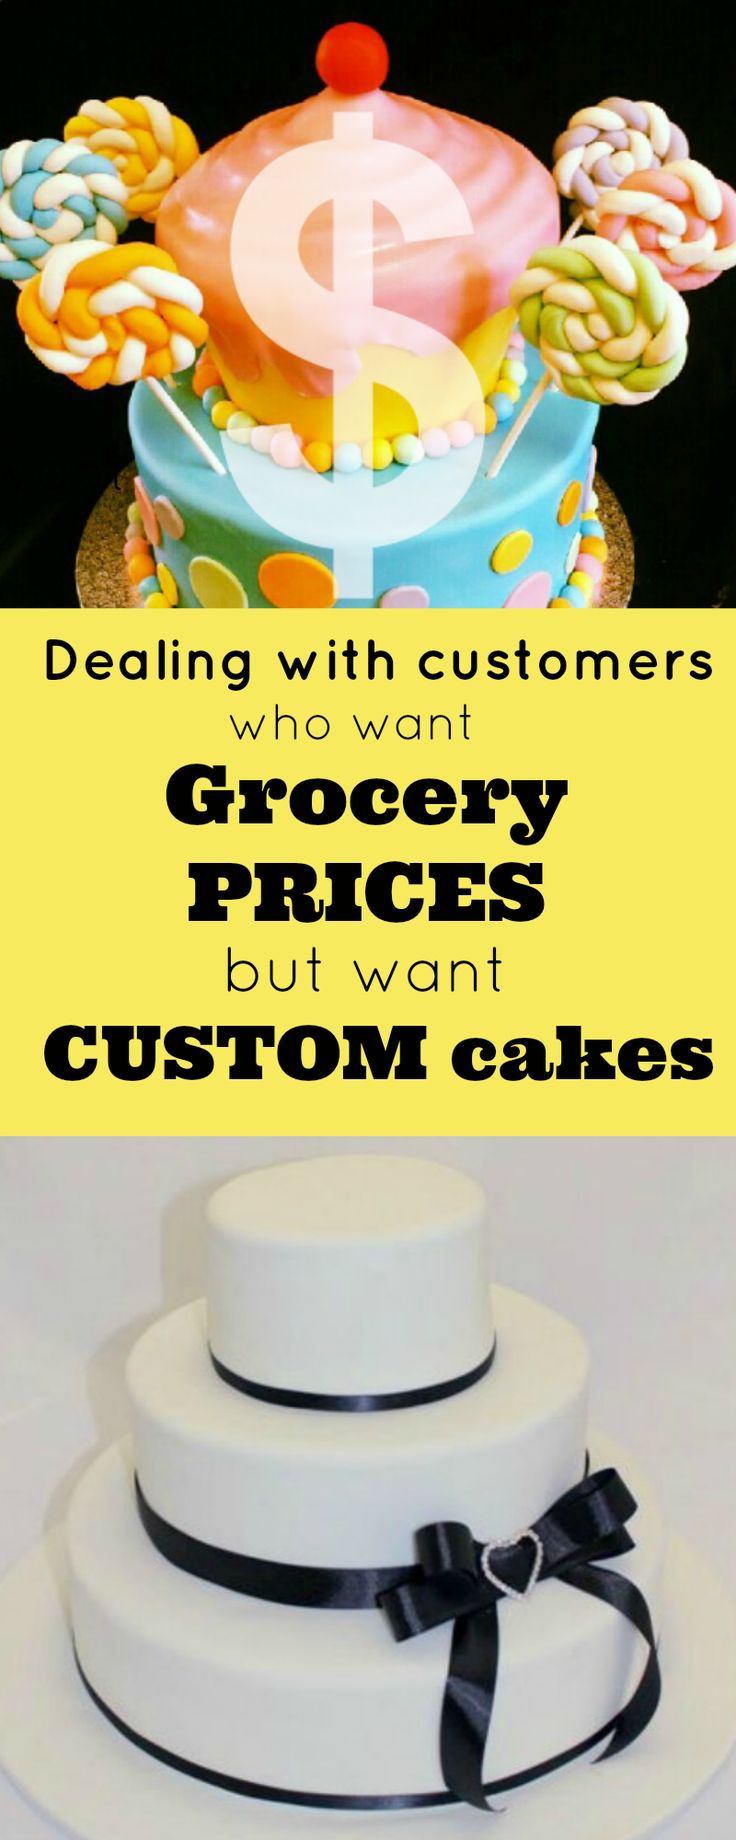 77 best Marketing and Business images on Pinterest | Art cakes ...